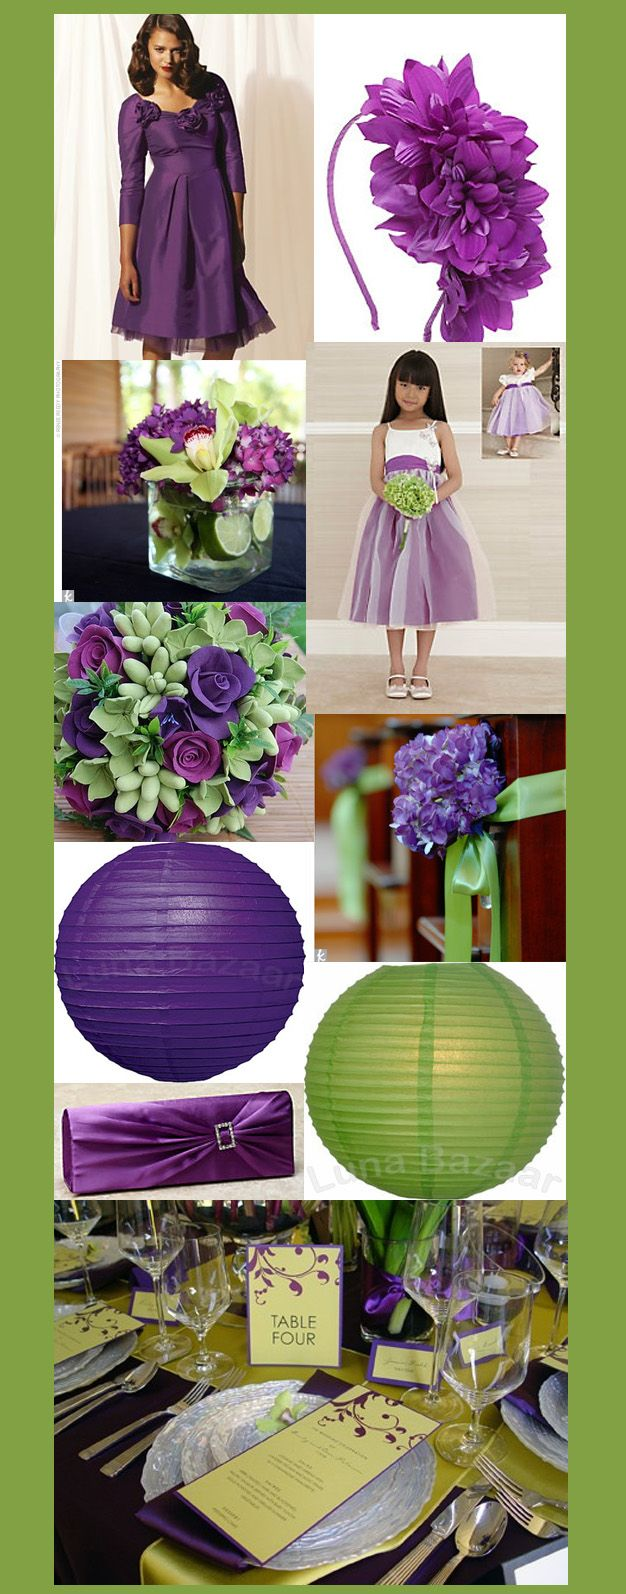 Paper Lanterns Are Just About The Exact Colors Green And Purple